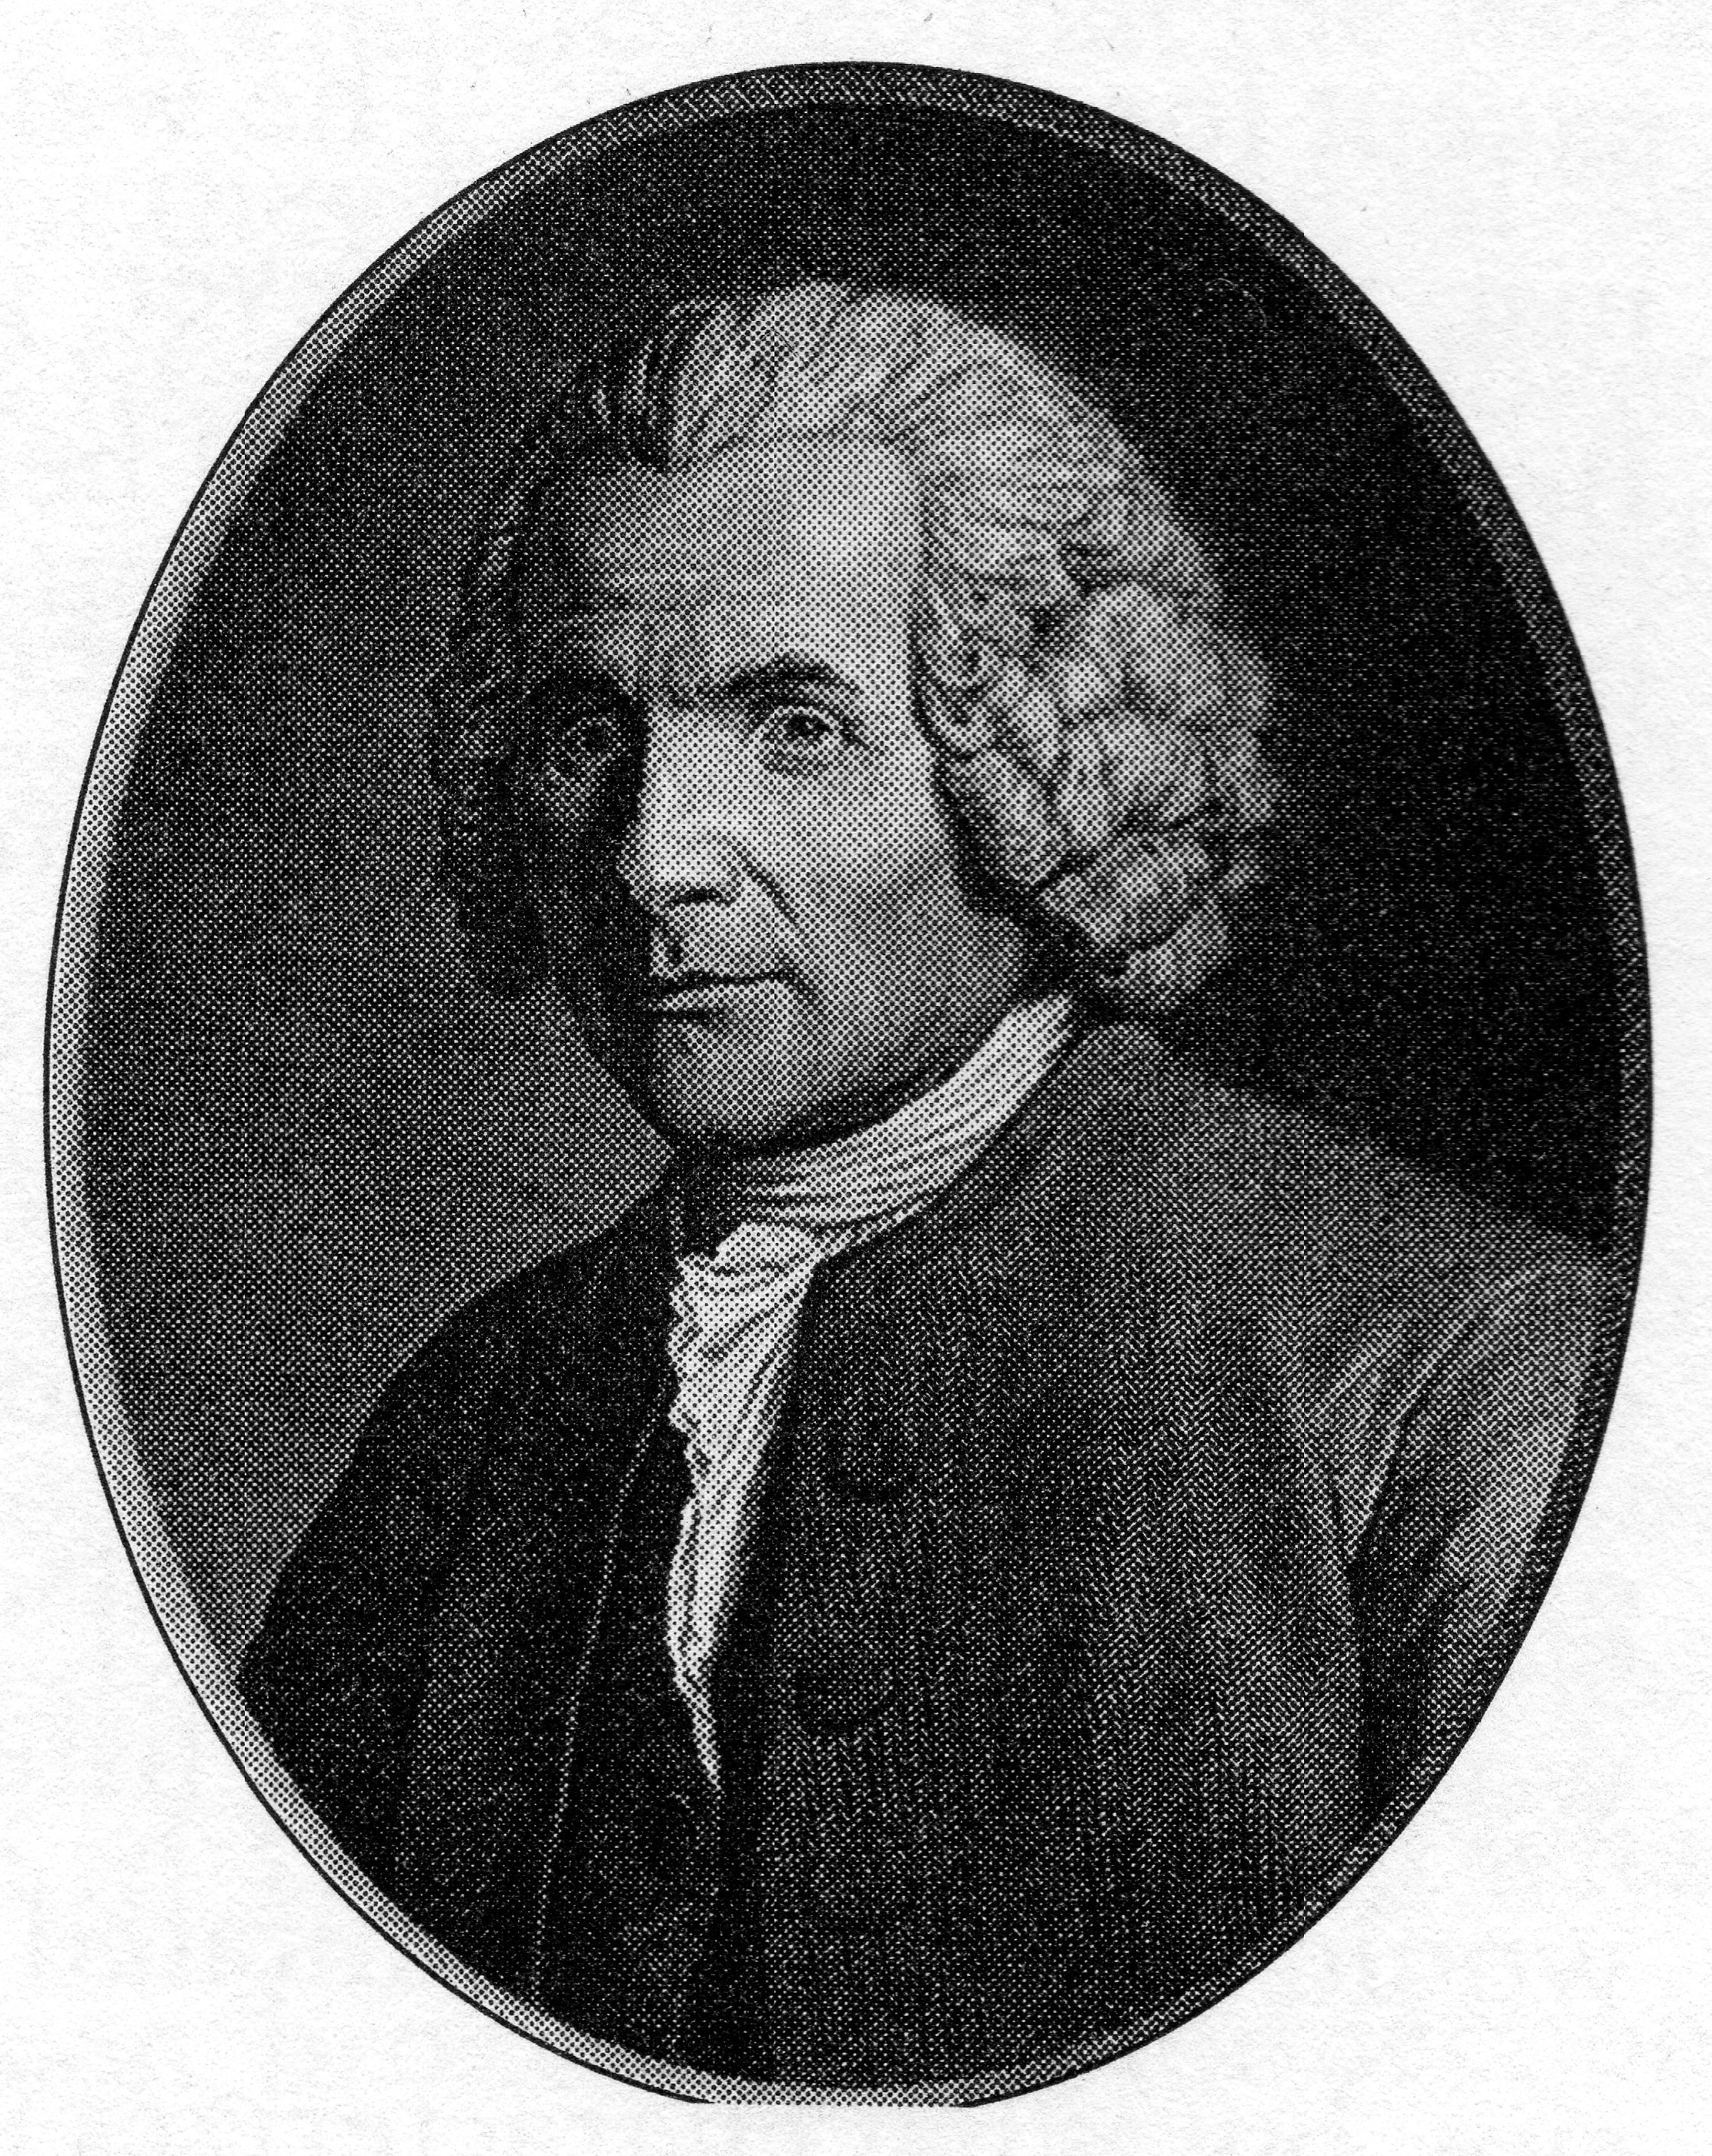 https://upload.wikimedia.org/wikipedia/commons/5/5d/Rousseau_in_later_life.jpg